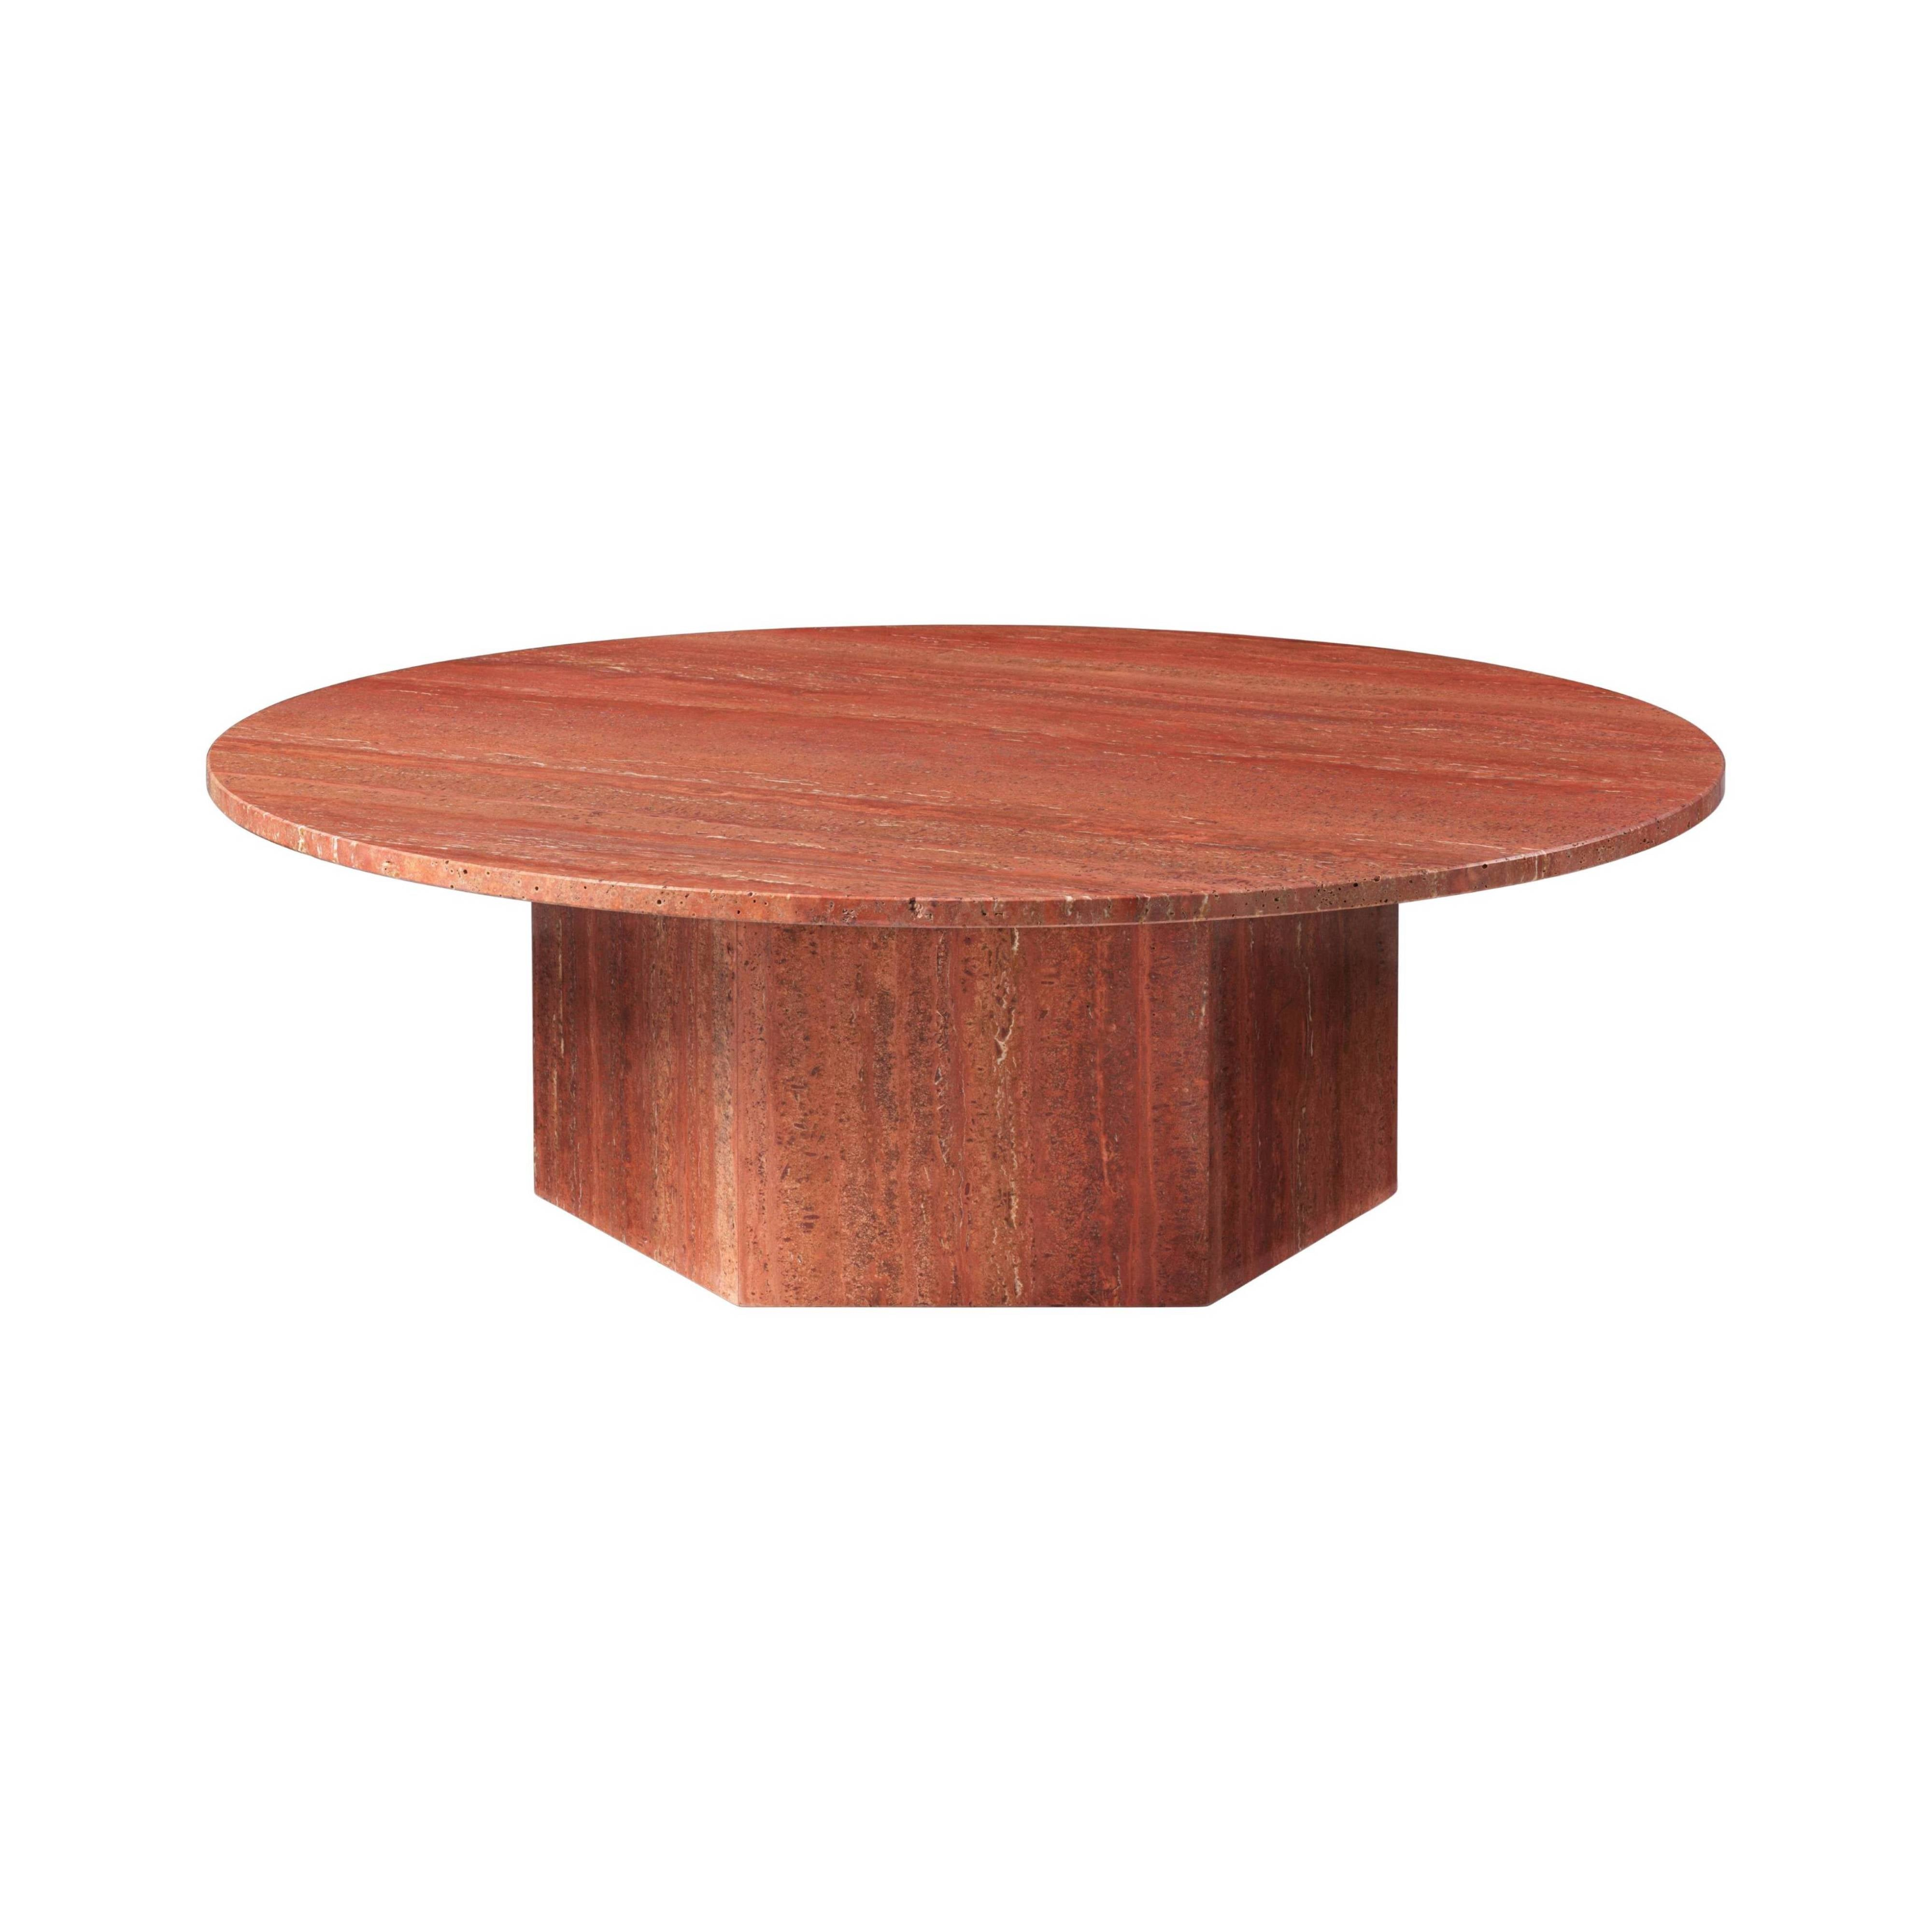 Epic Coffee Table: Round + Large + Red